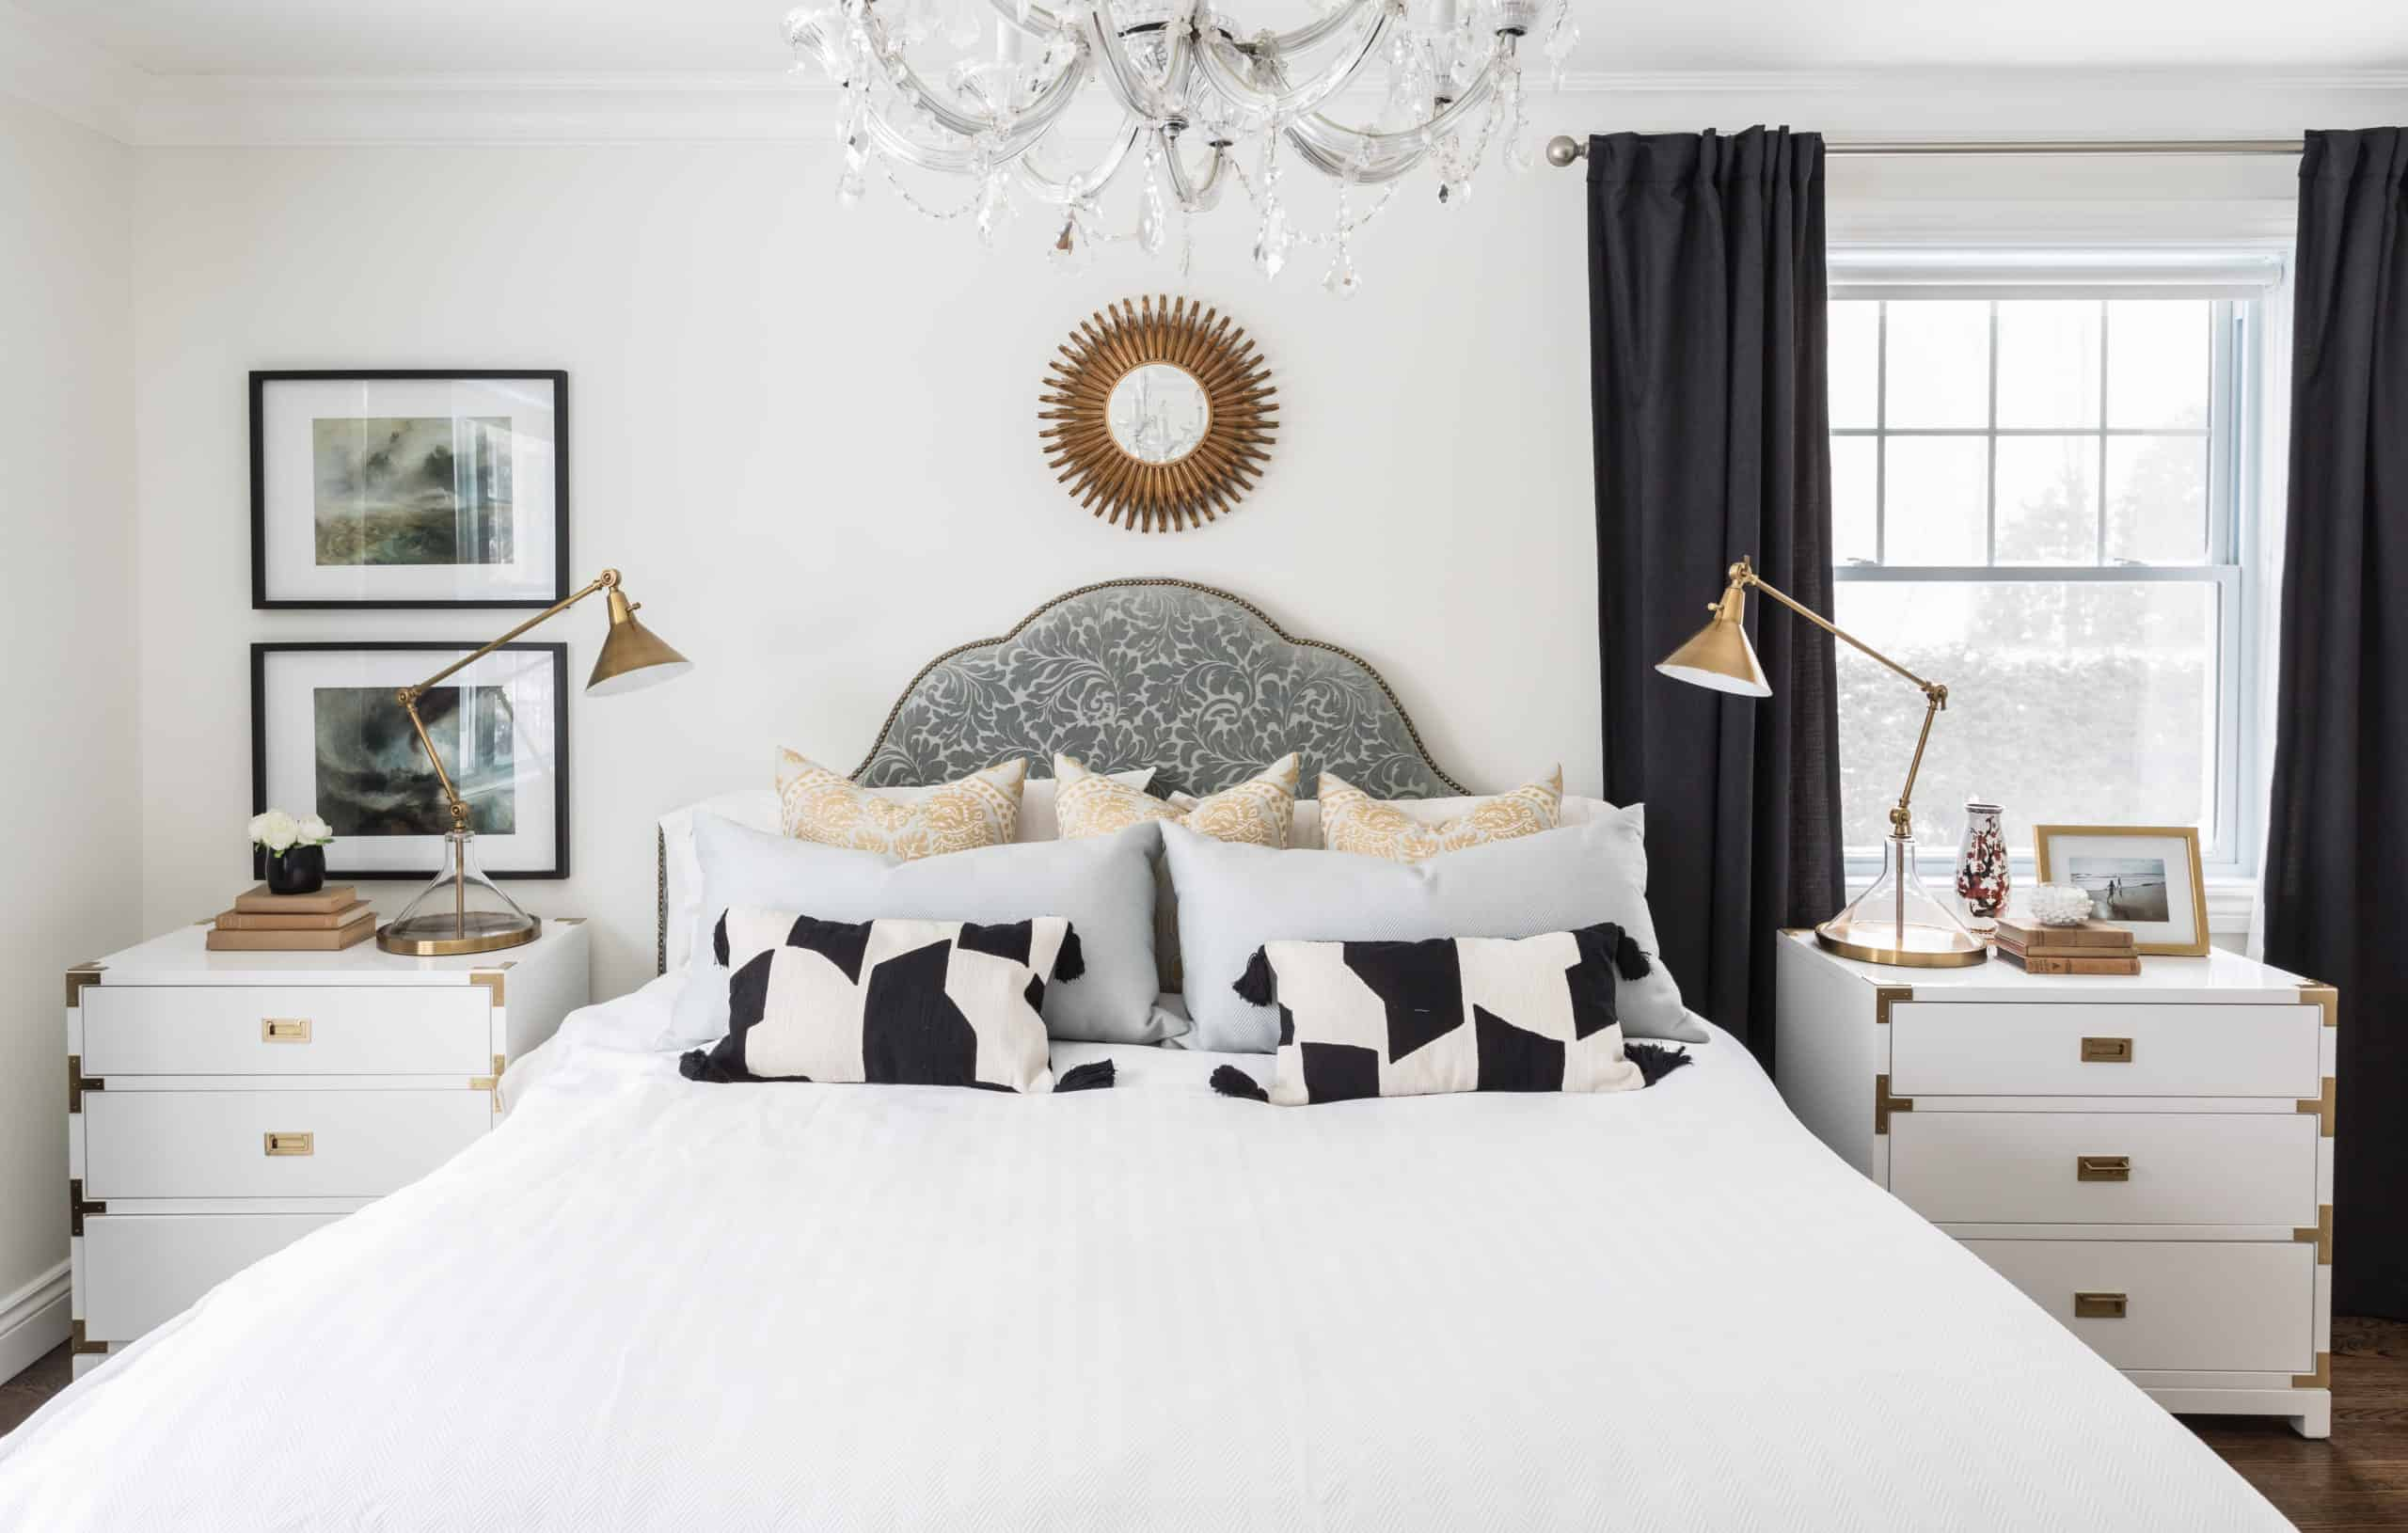 Modern master bedroom with a circular mirror decoration above the bed